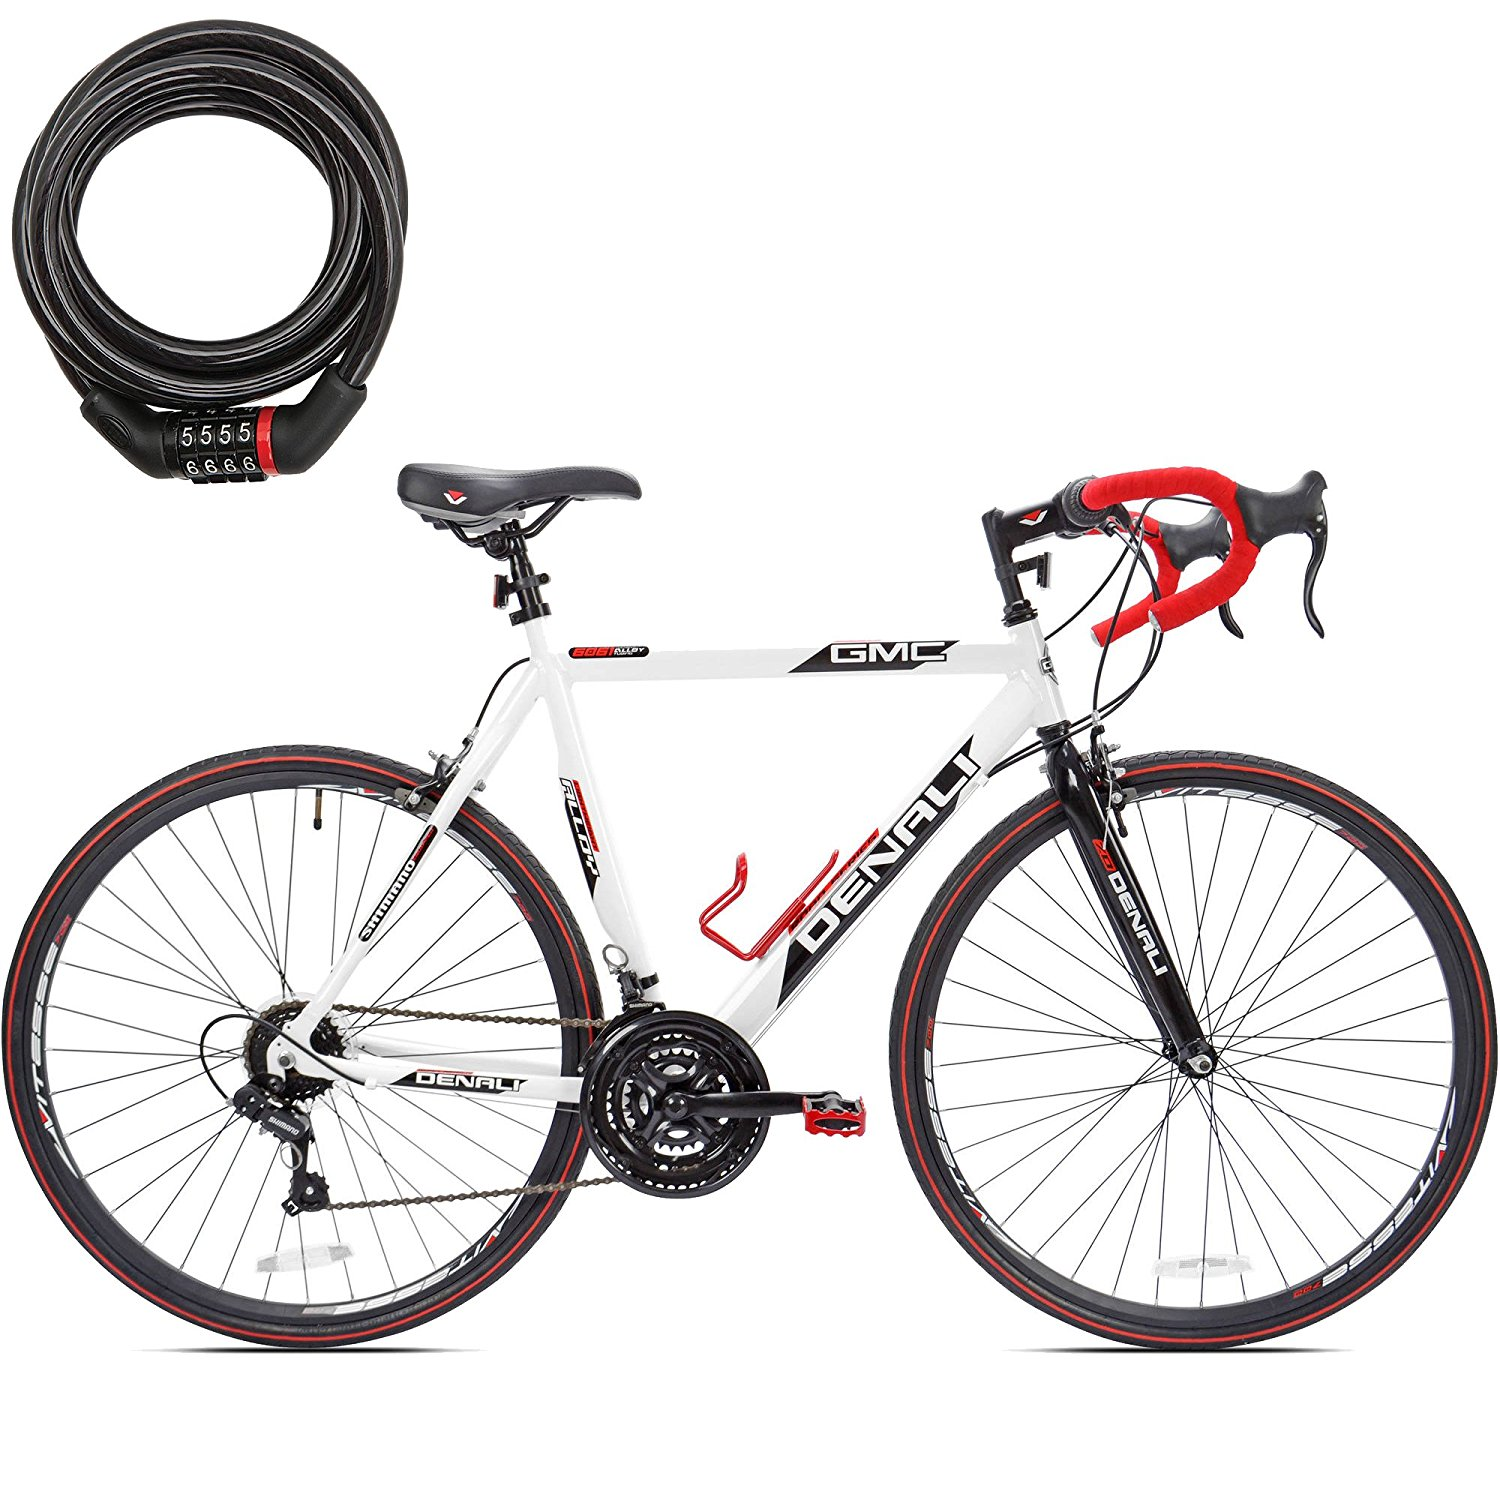 25 Inch GMC 700c Denali Bicycle 21 Speed Shimano Gear Lightweight Aluminum Frame Road Bike for Men with FREE Safety Bike Lock